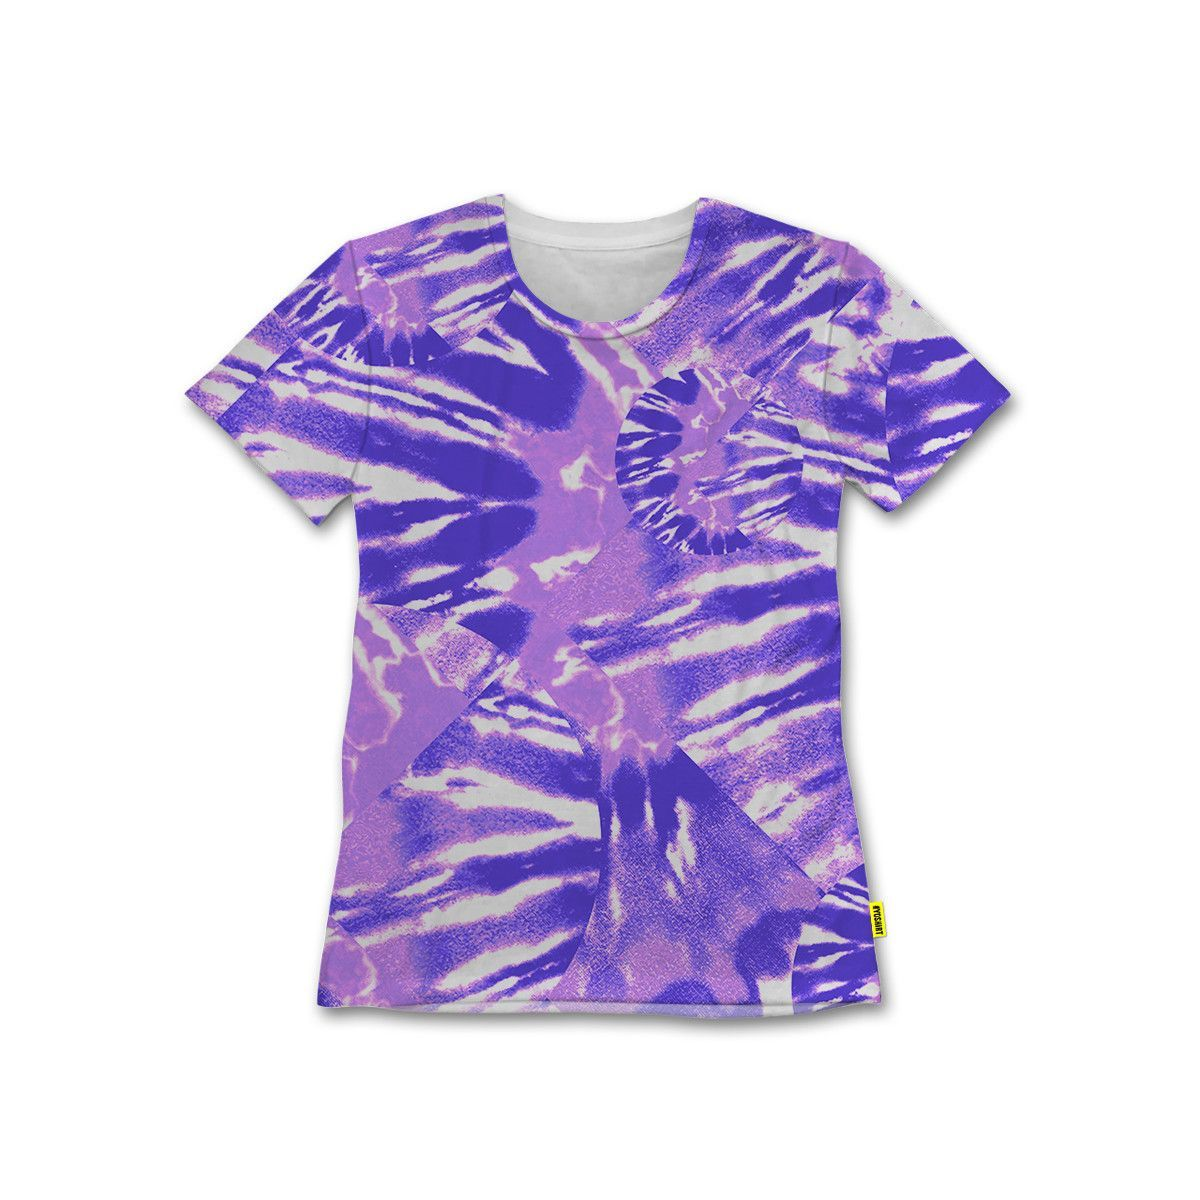 To Dye For - Women's Crew Tshirt - Yoshirt Collection